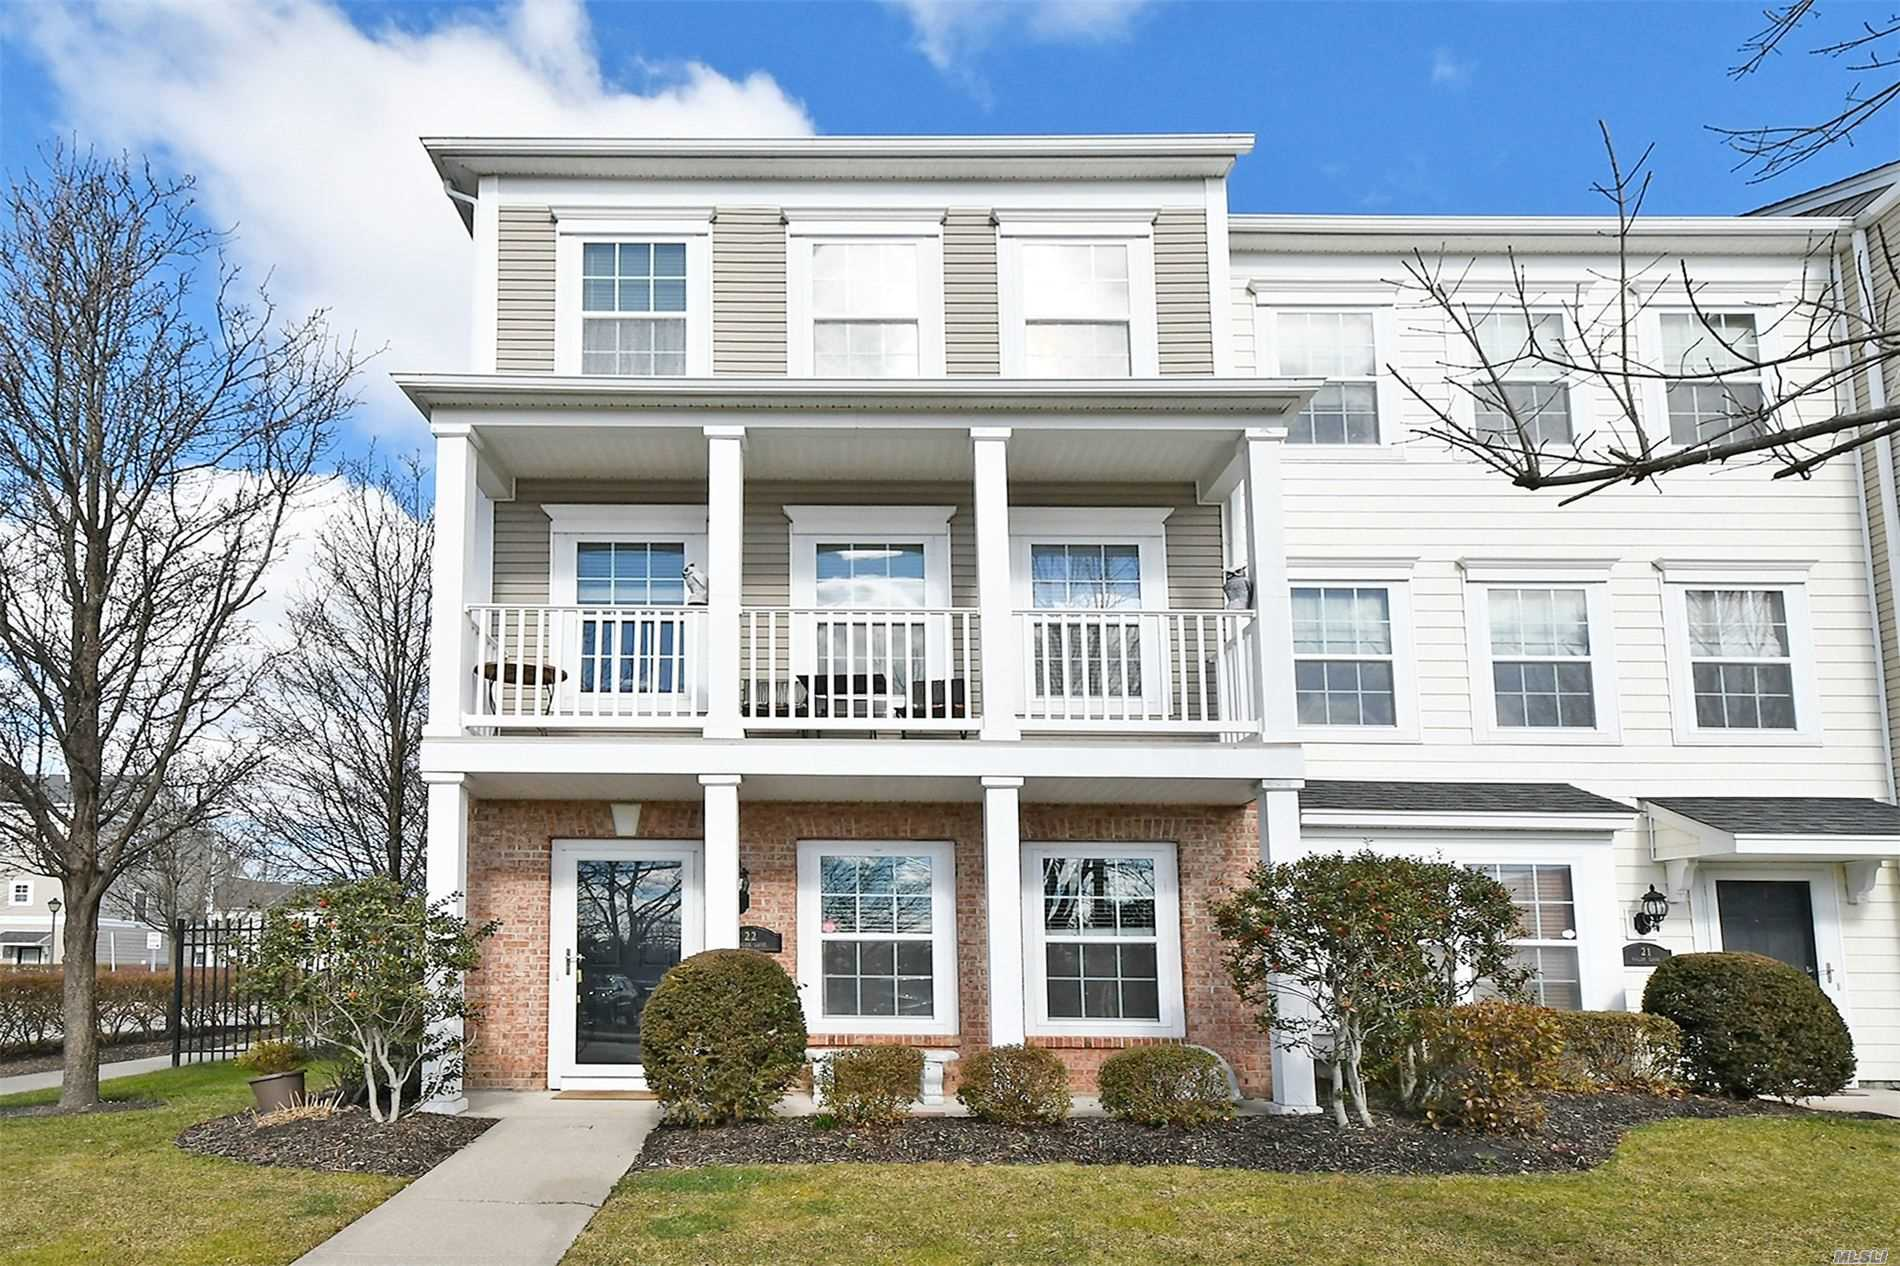 Property for sale at 22 Maler Lane, Patchogue NY 11772, Patchogue,  New York 11772